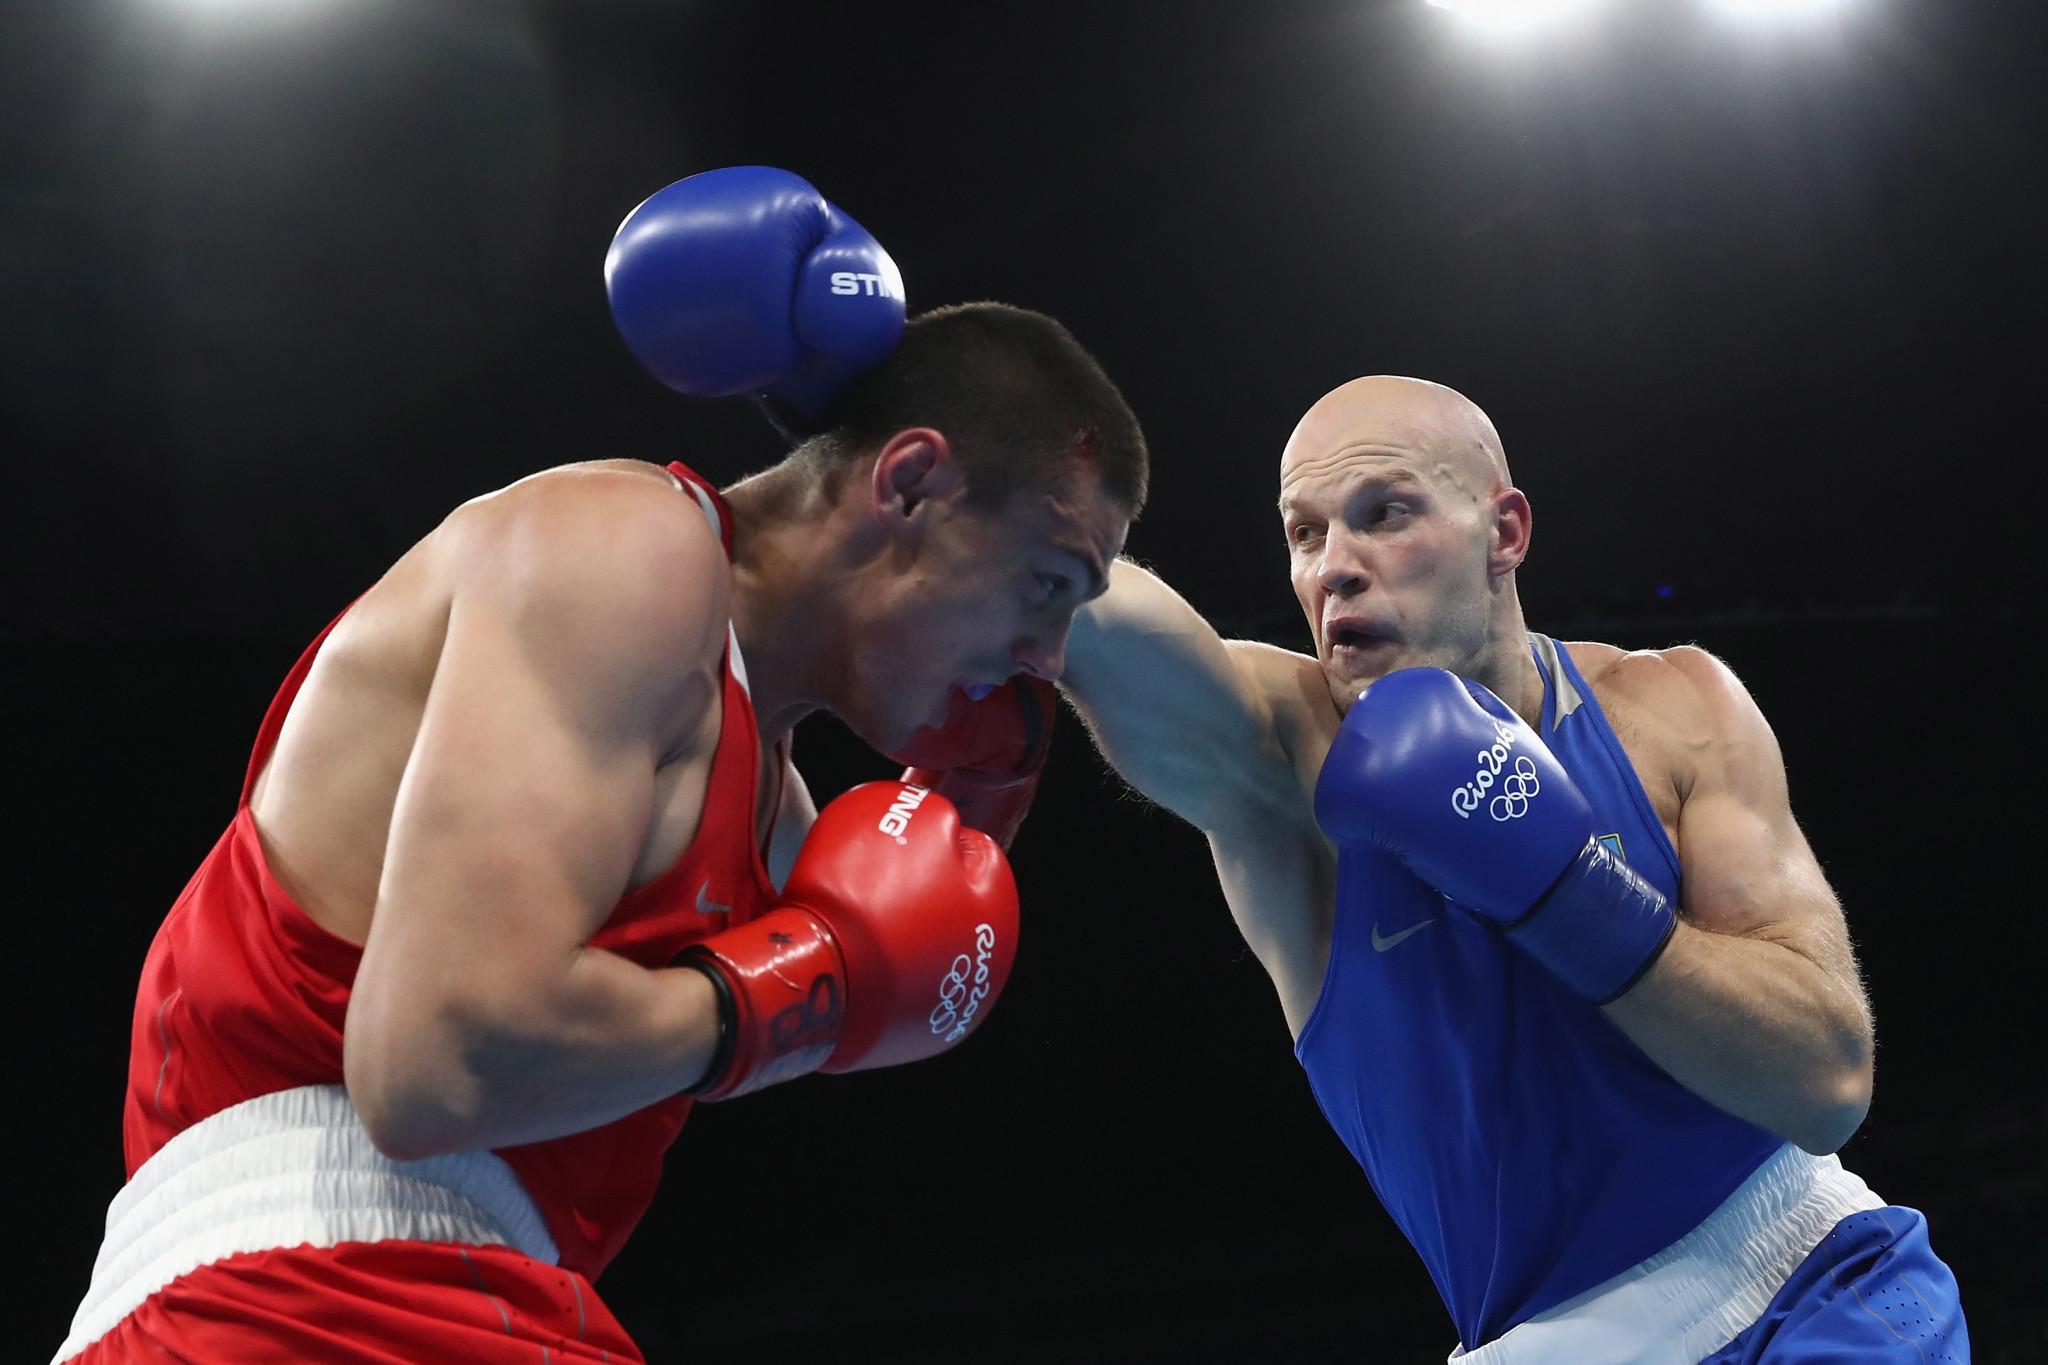 Evgeny Tishchenko of Russia was another controversial winner at Rio 2016 against Vassiliy Levit of Kazakhstan ©Getty Images